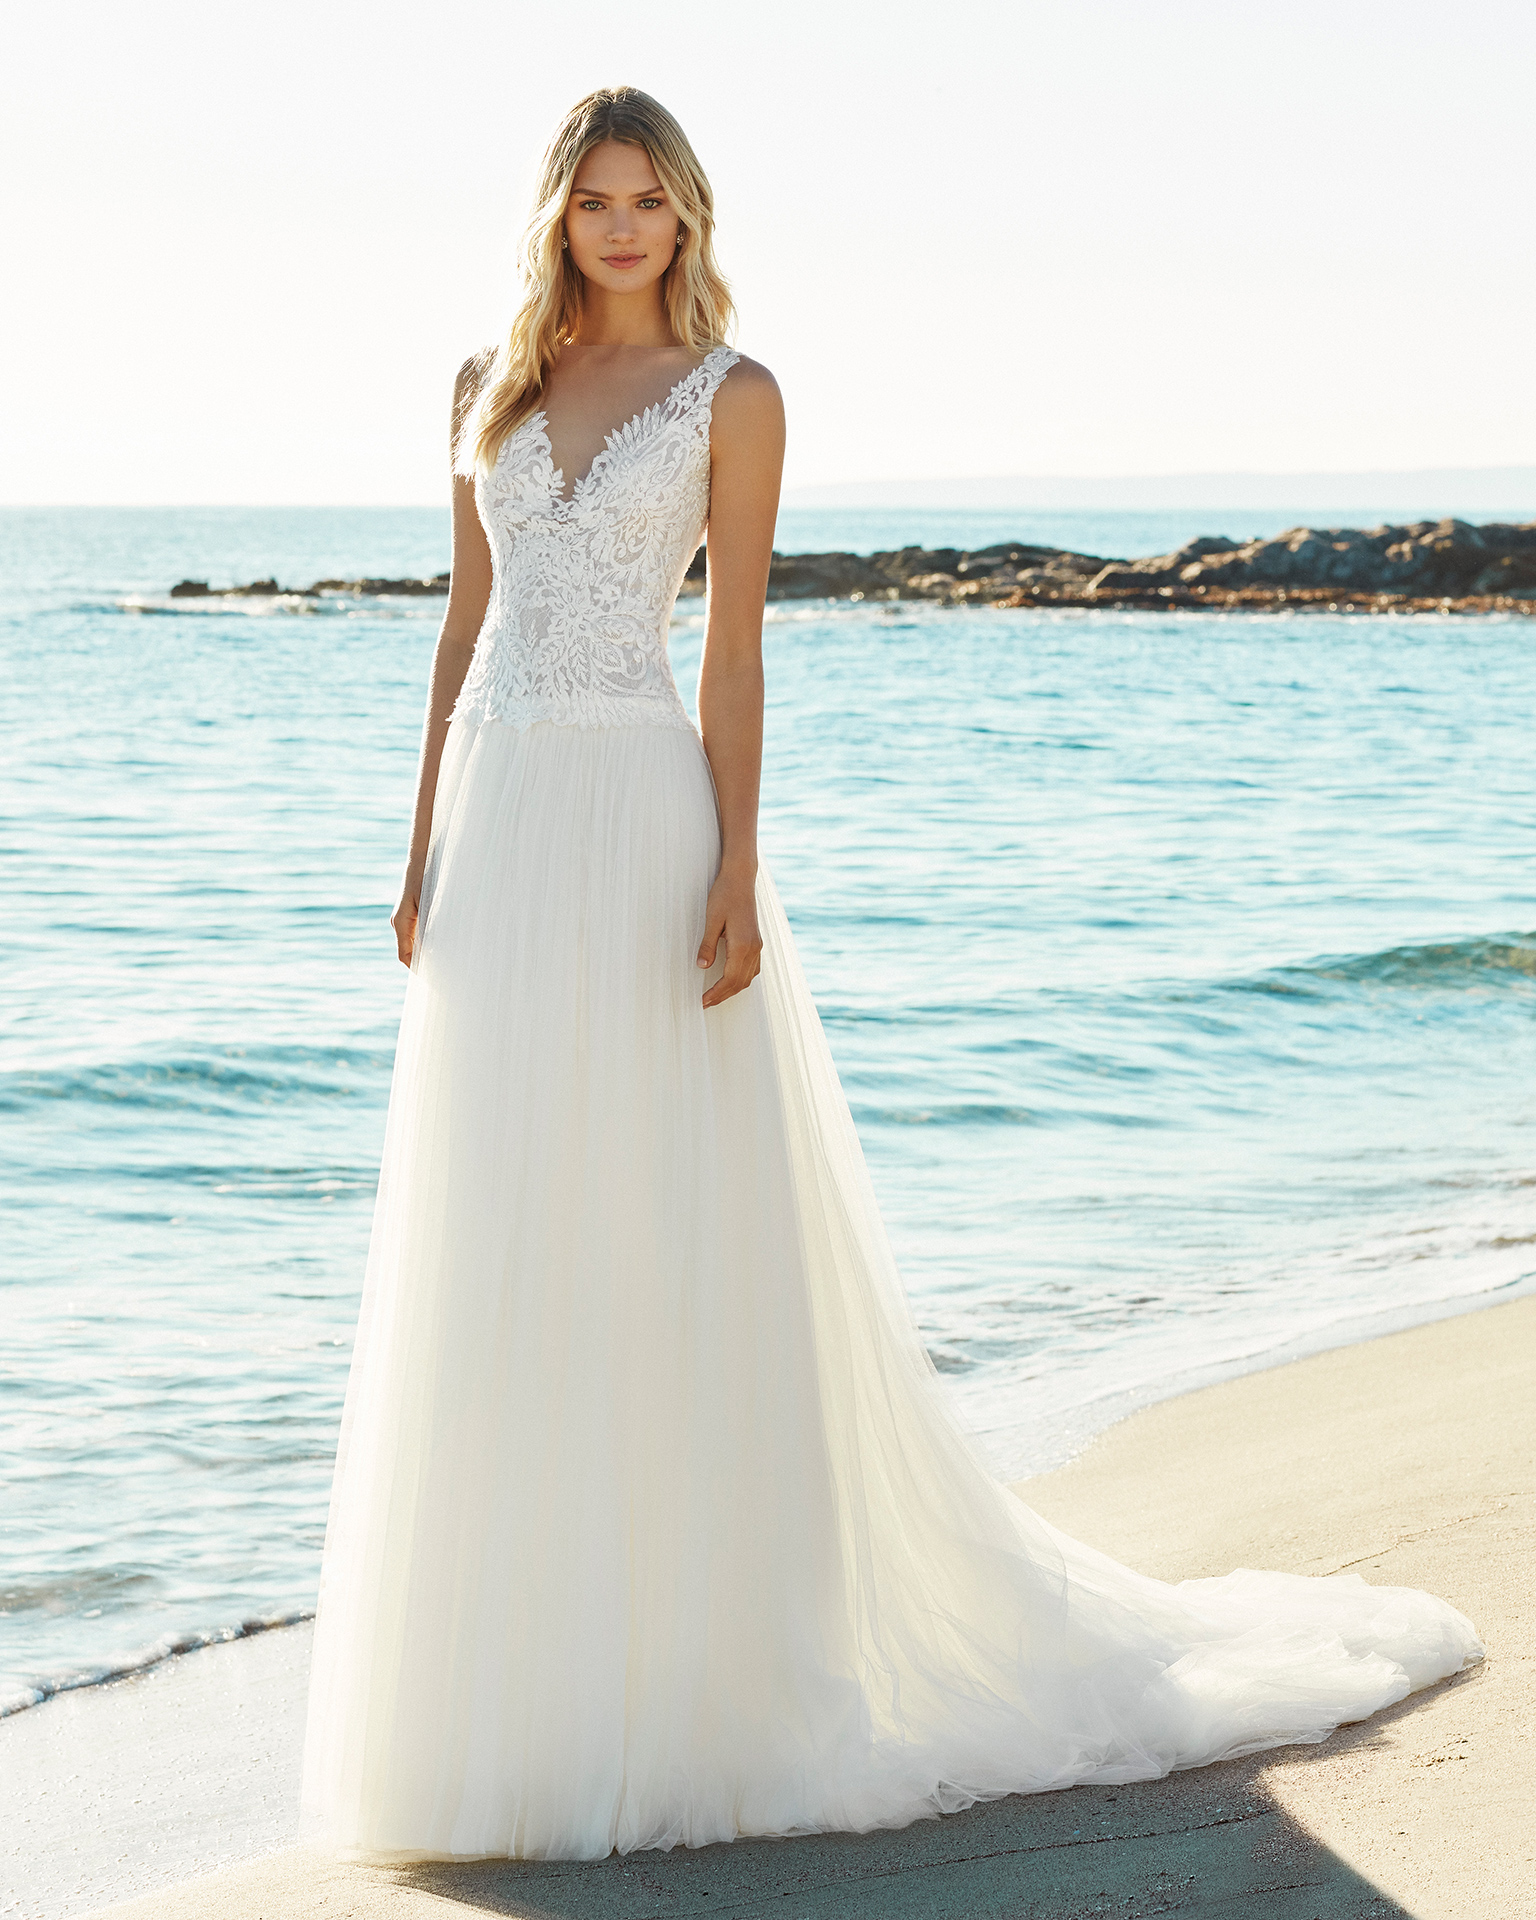 2019_GILM_AIRE_BEACH_WEDDING_1